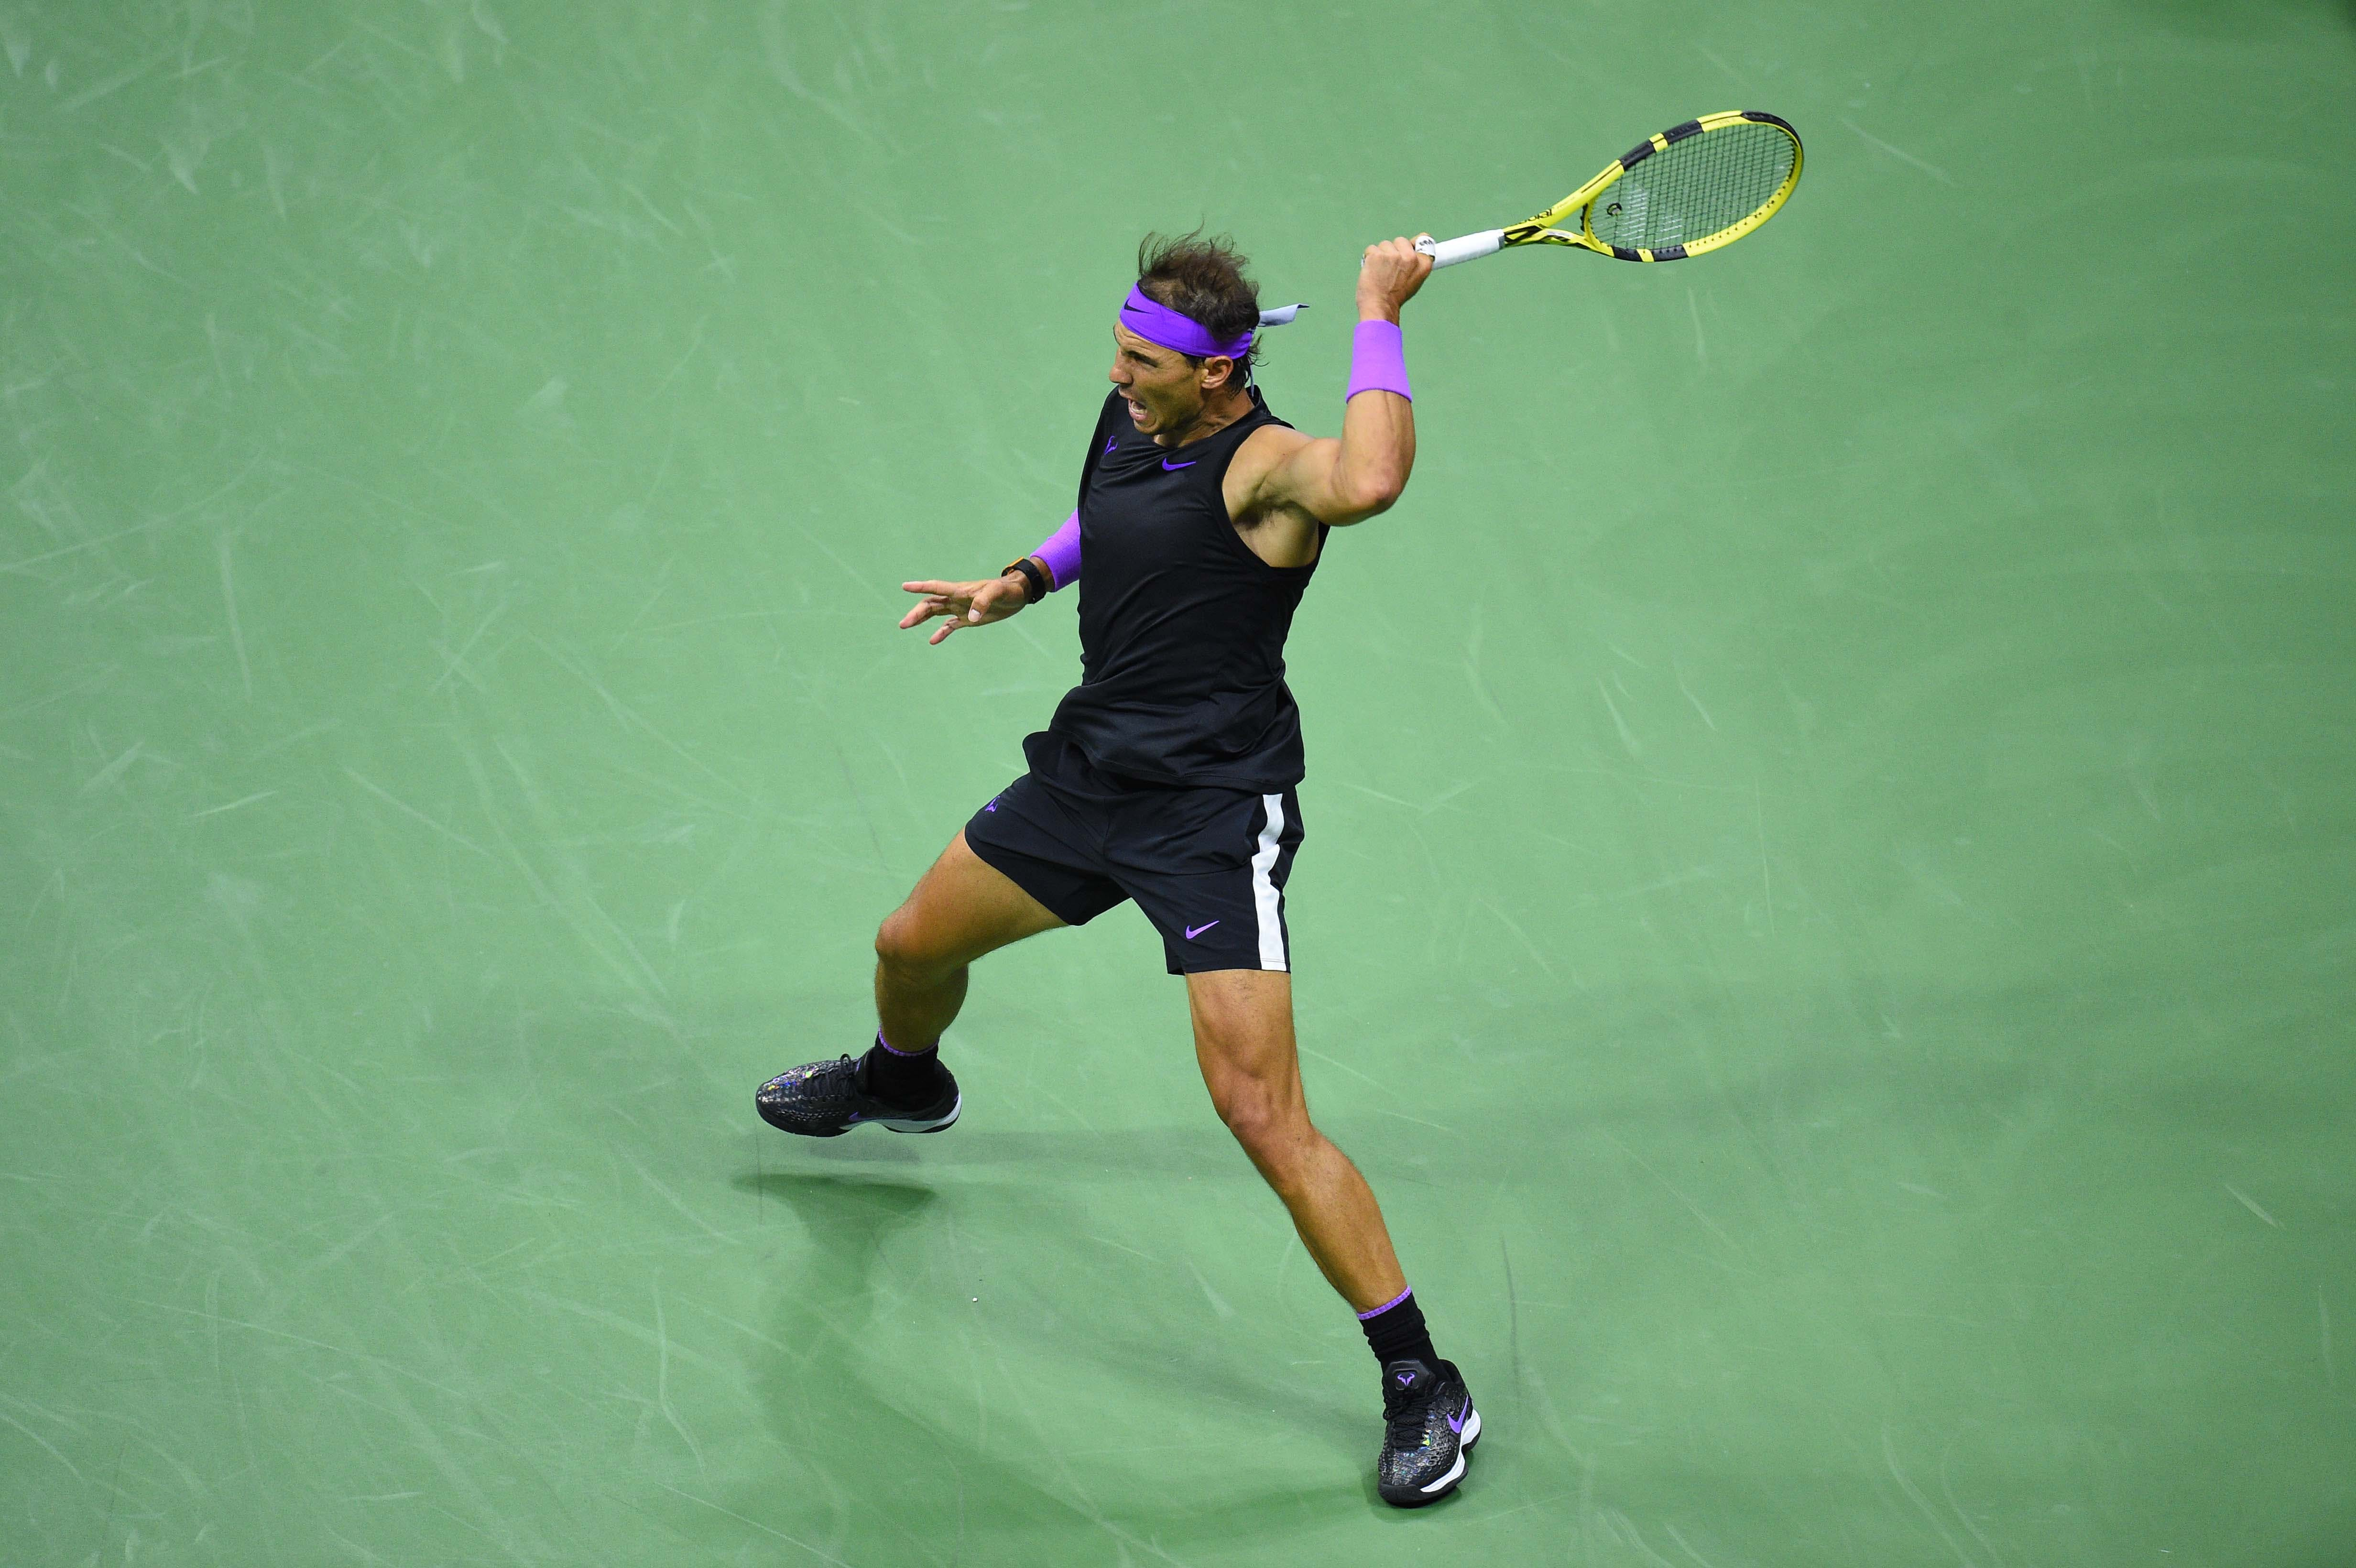 Rafael Nadal hiting a forhand during his semifinal at the 2019 US Open